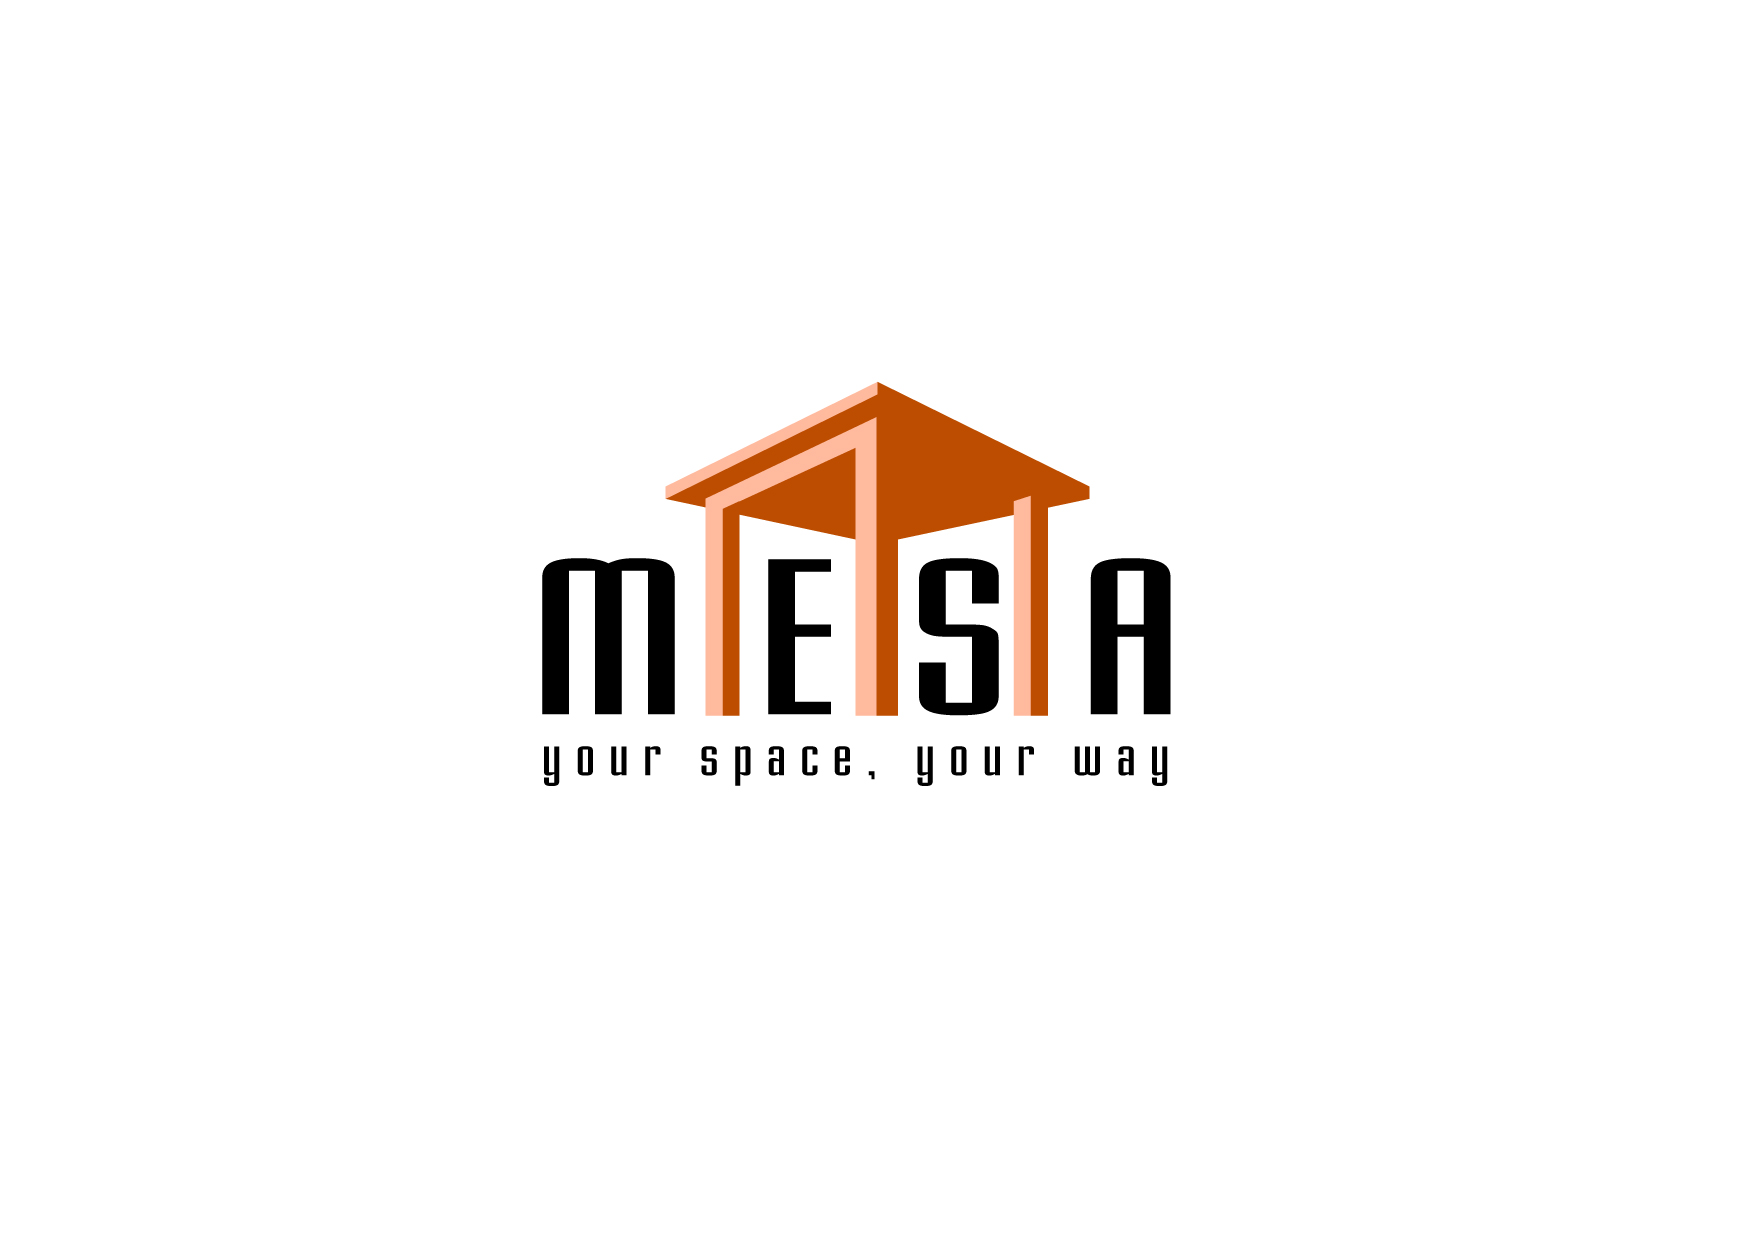 Logo Design by Wilfredo Mendoza - Entry No. 193 in the Logo Design Contest Logo Design for Mesa.